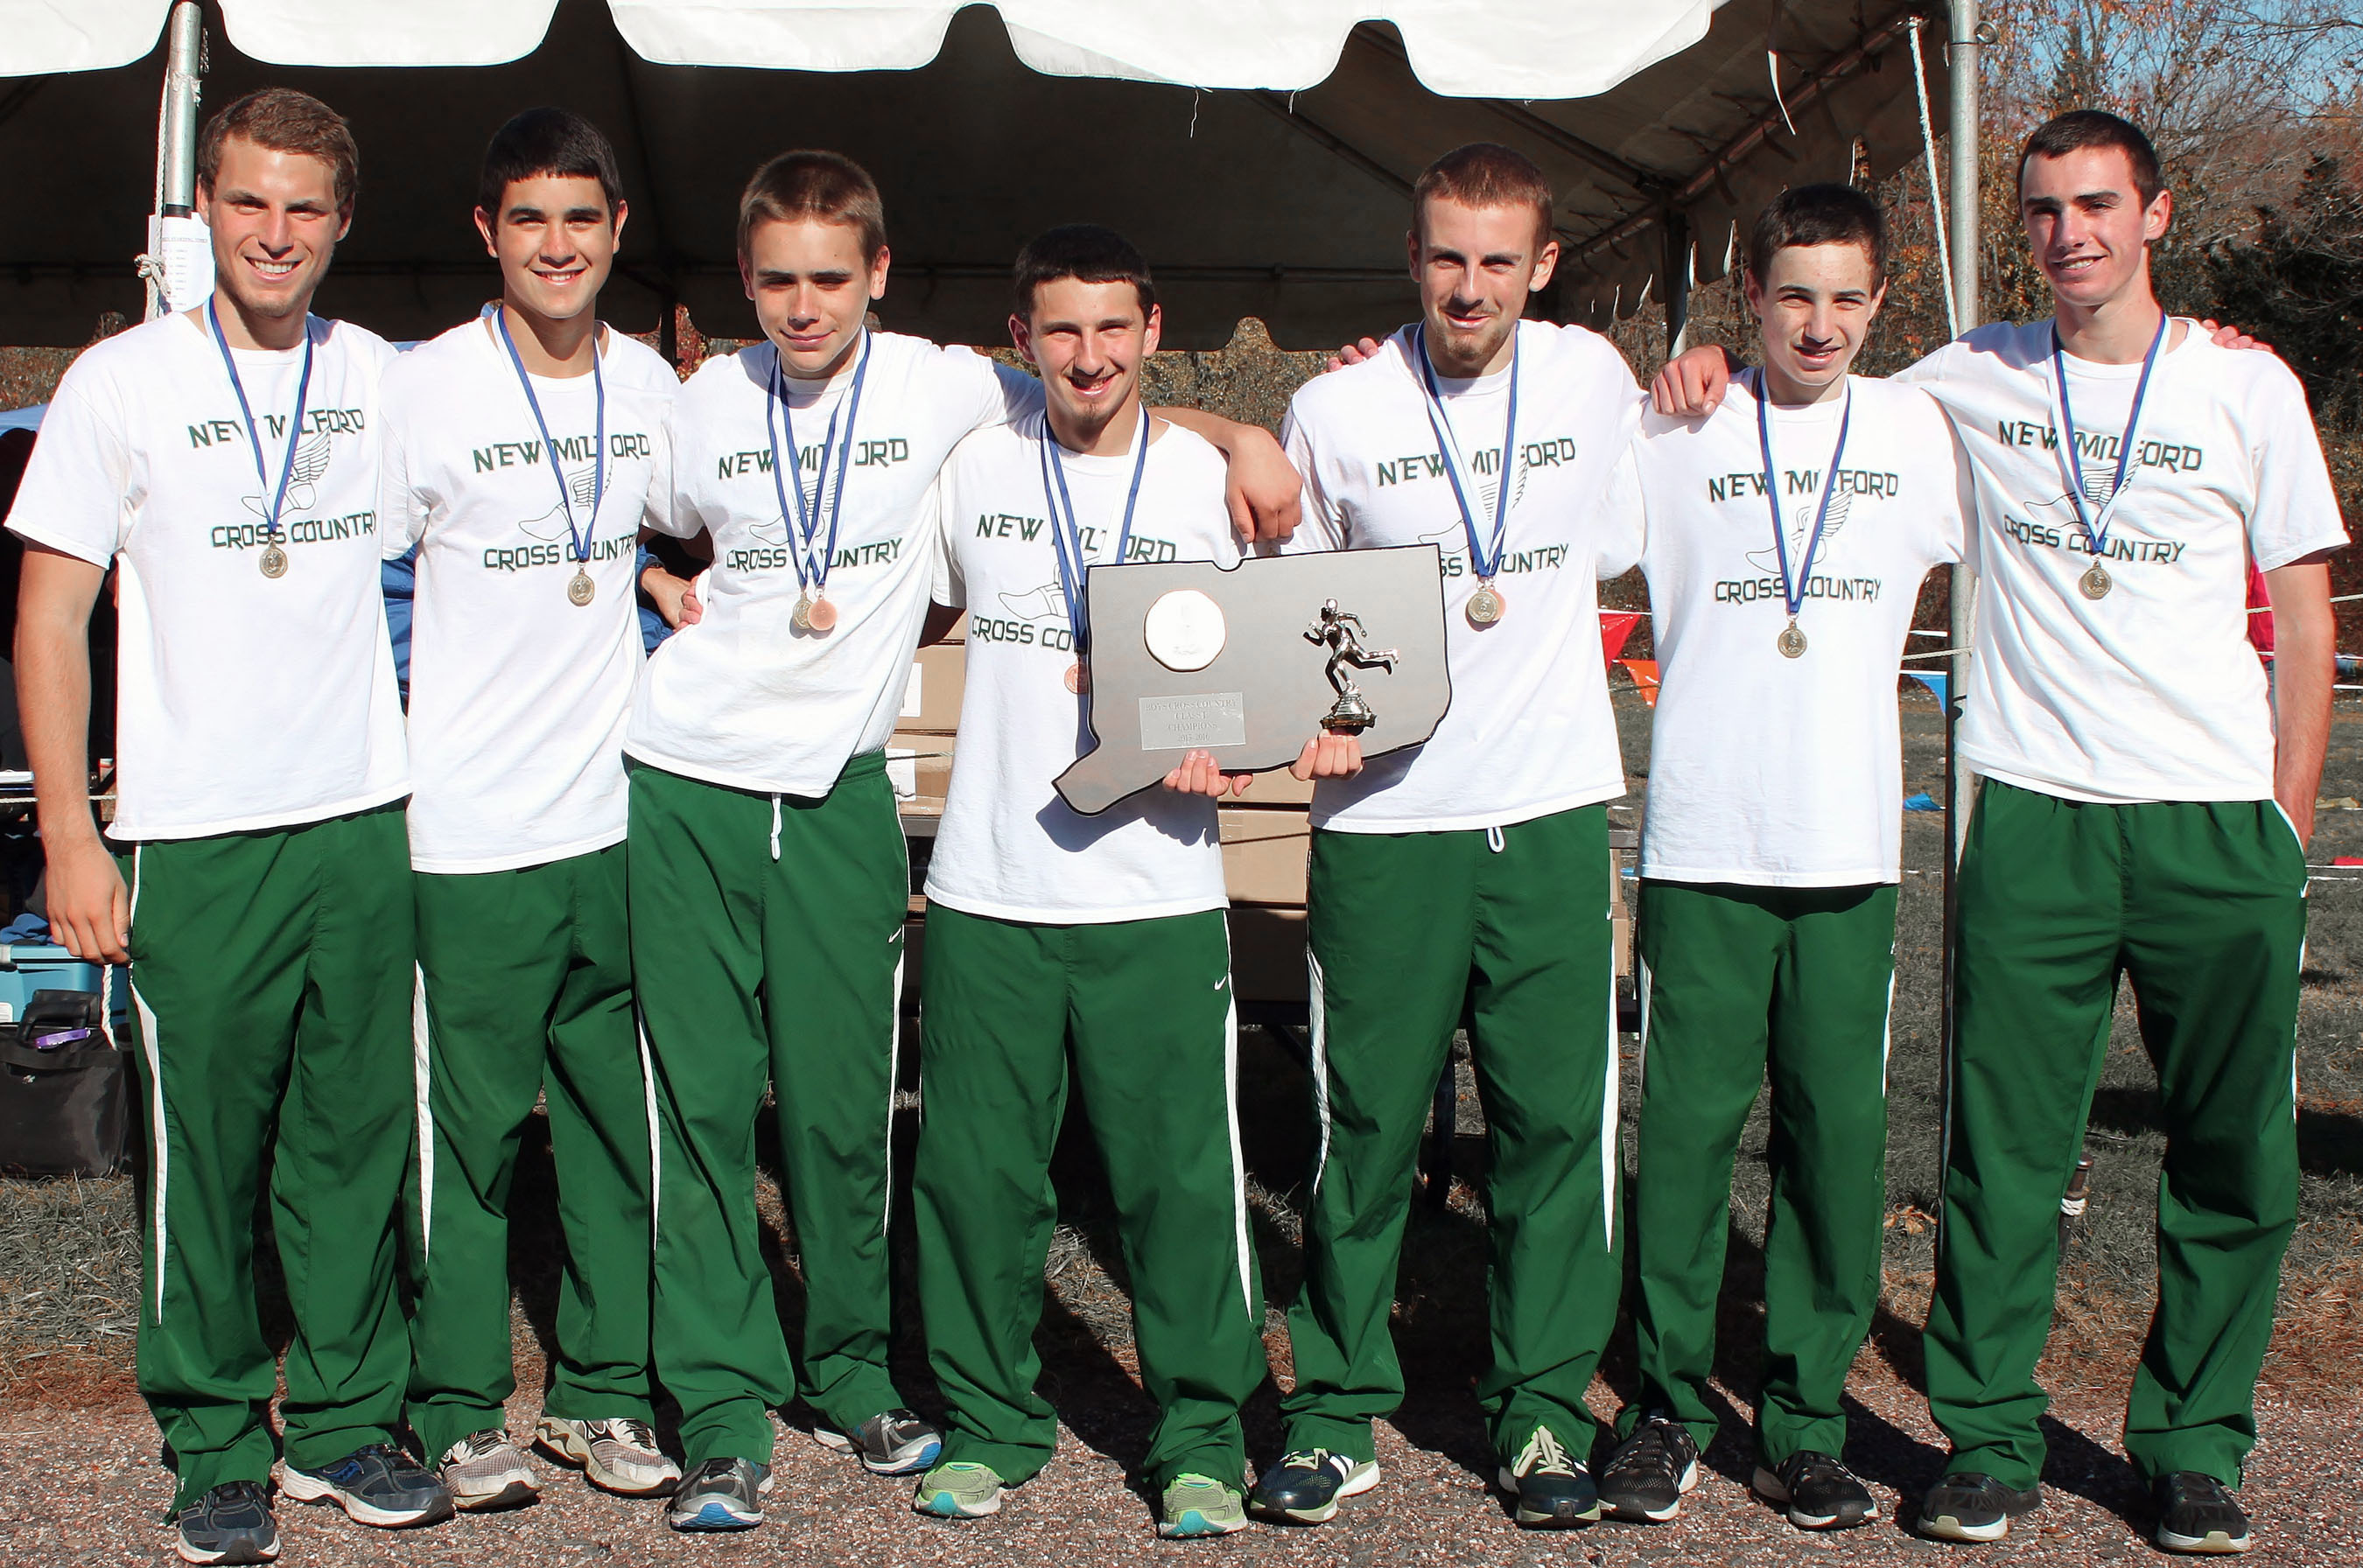 Green Wave boys' cross country 2015 state 'L' champions